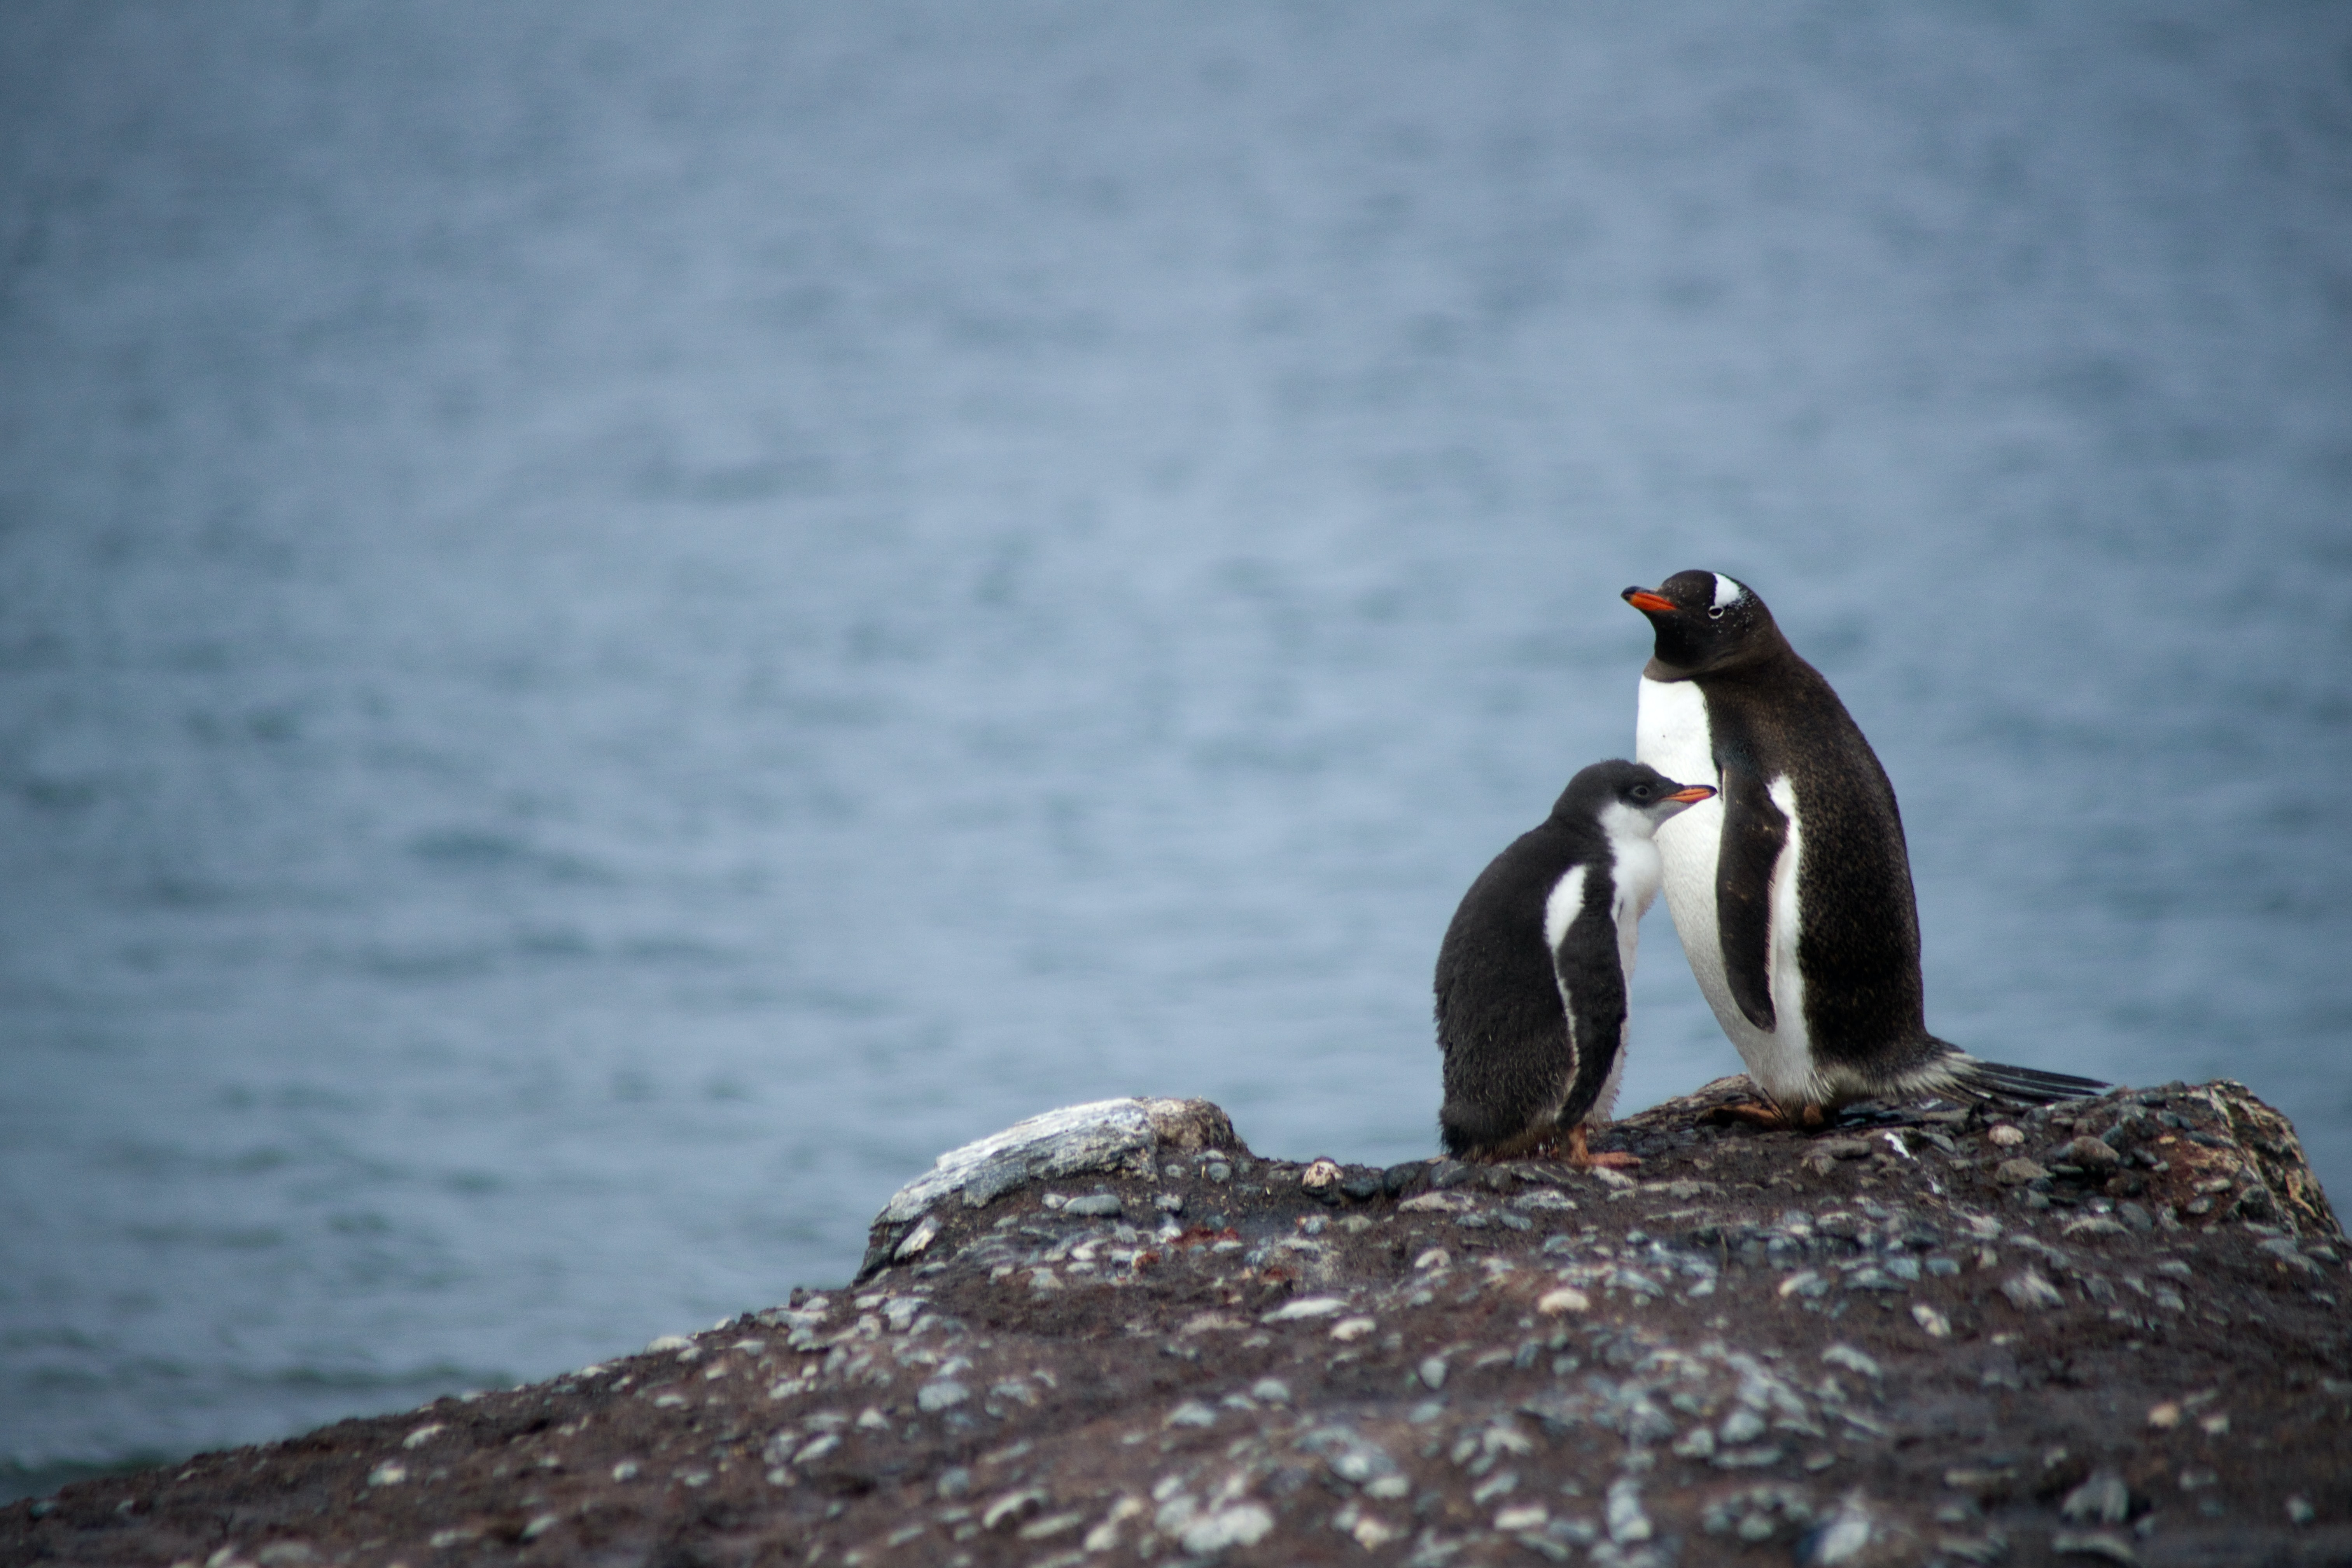 two penguin on rock formation near body of water